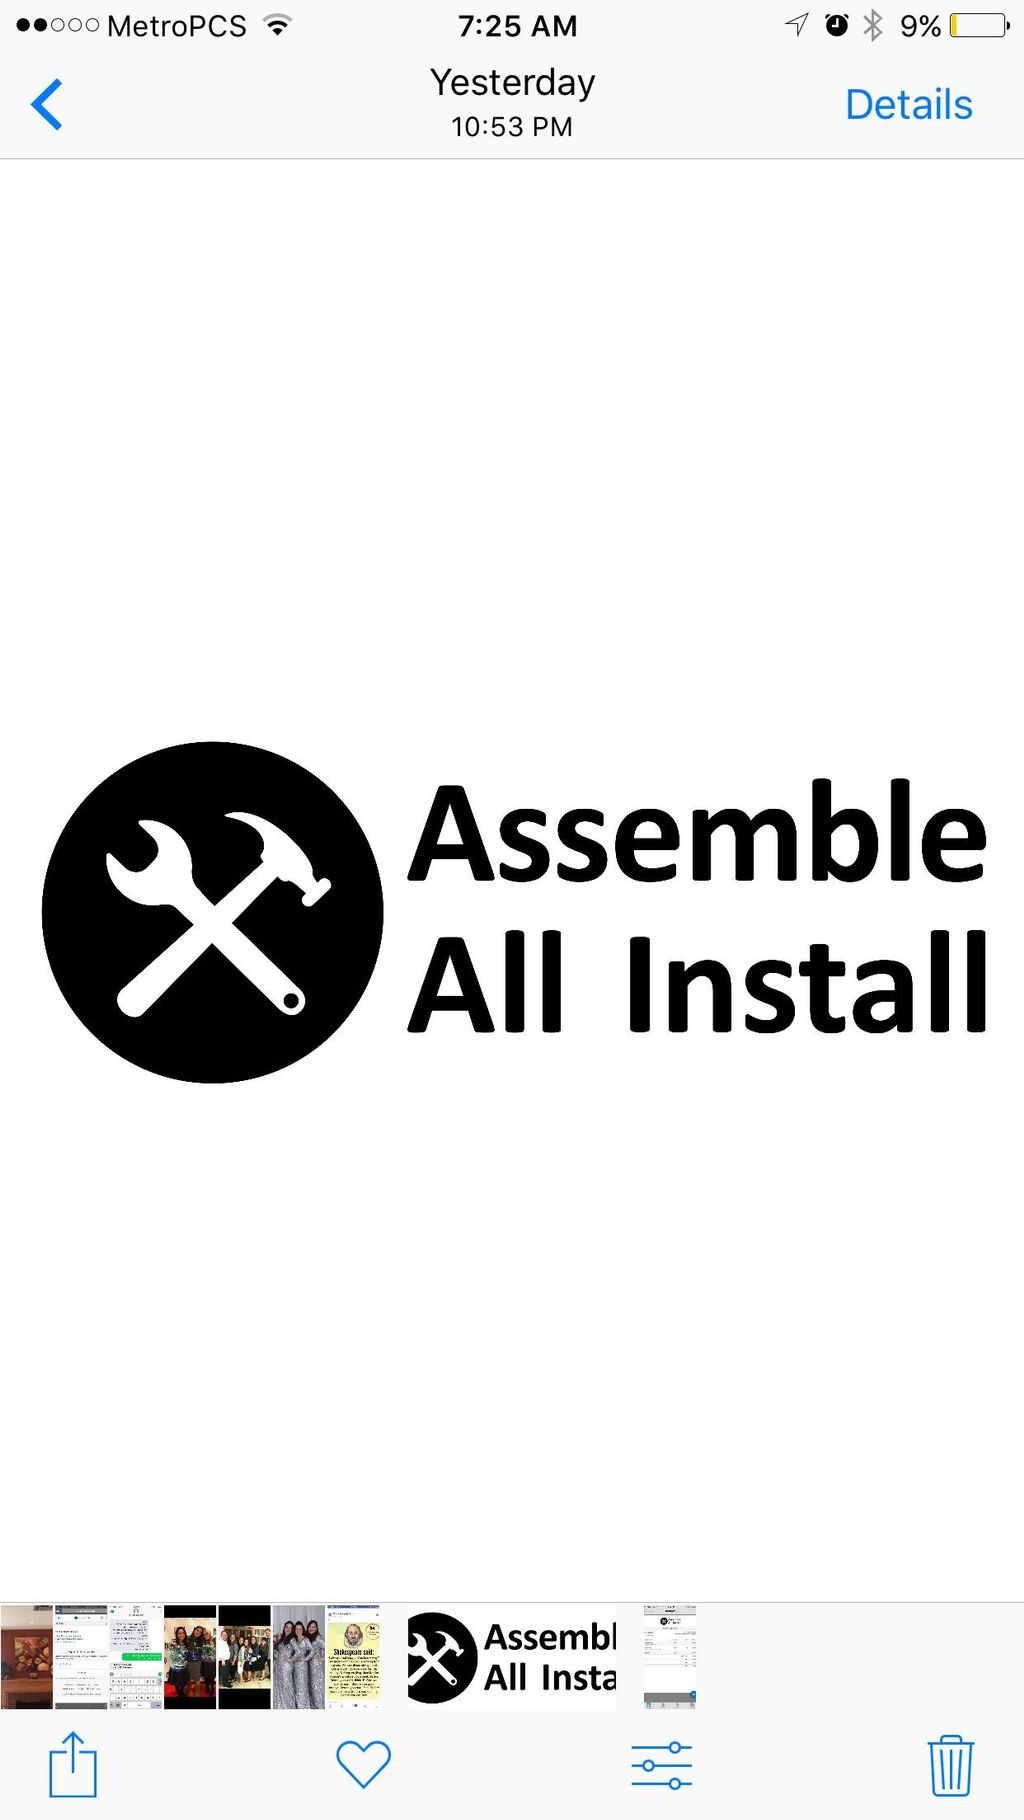 Assemble All Install